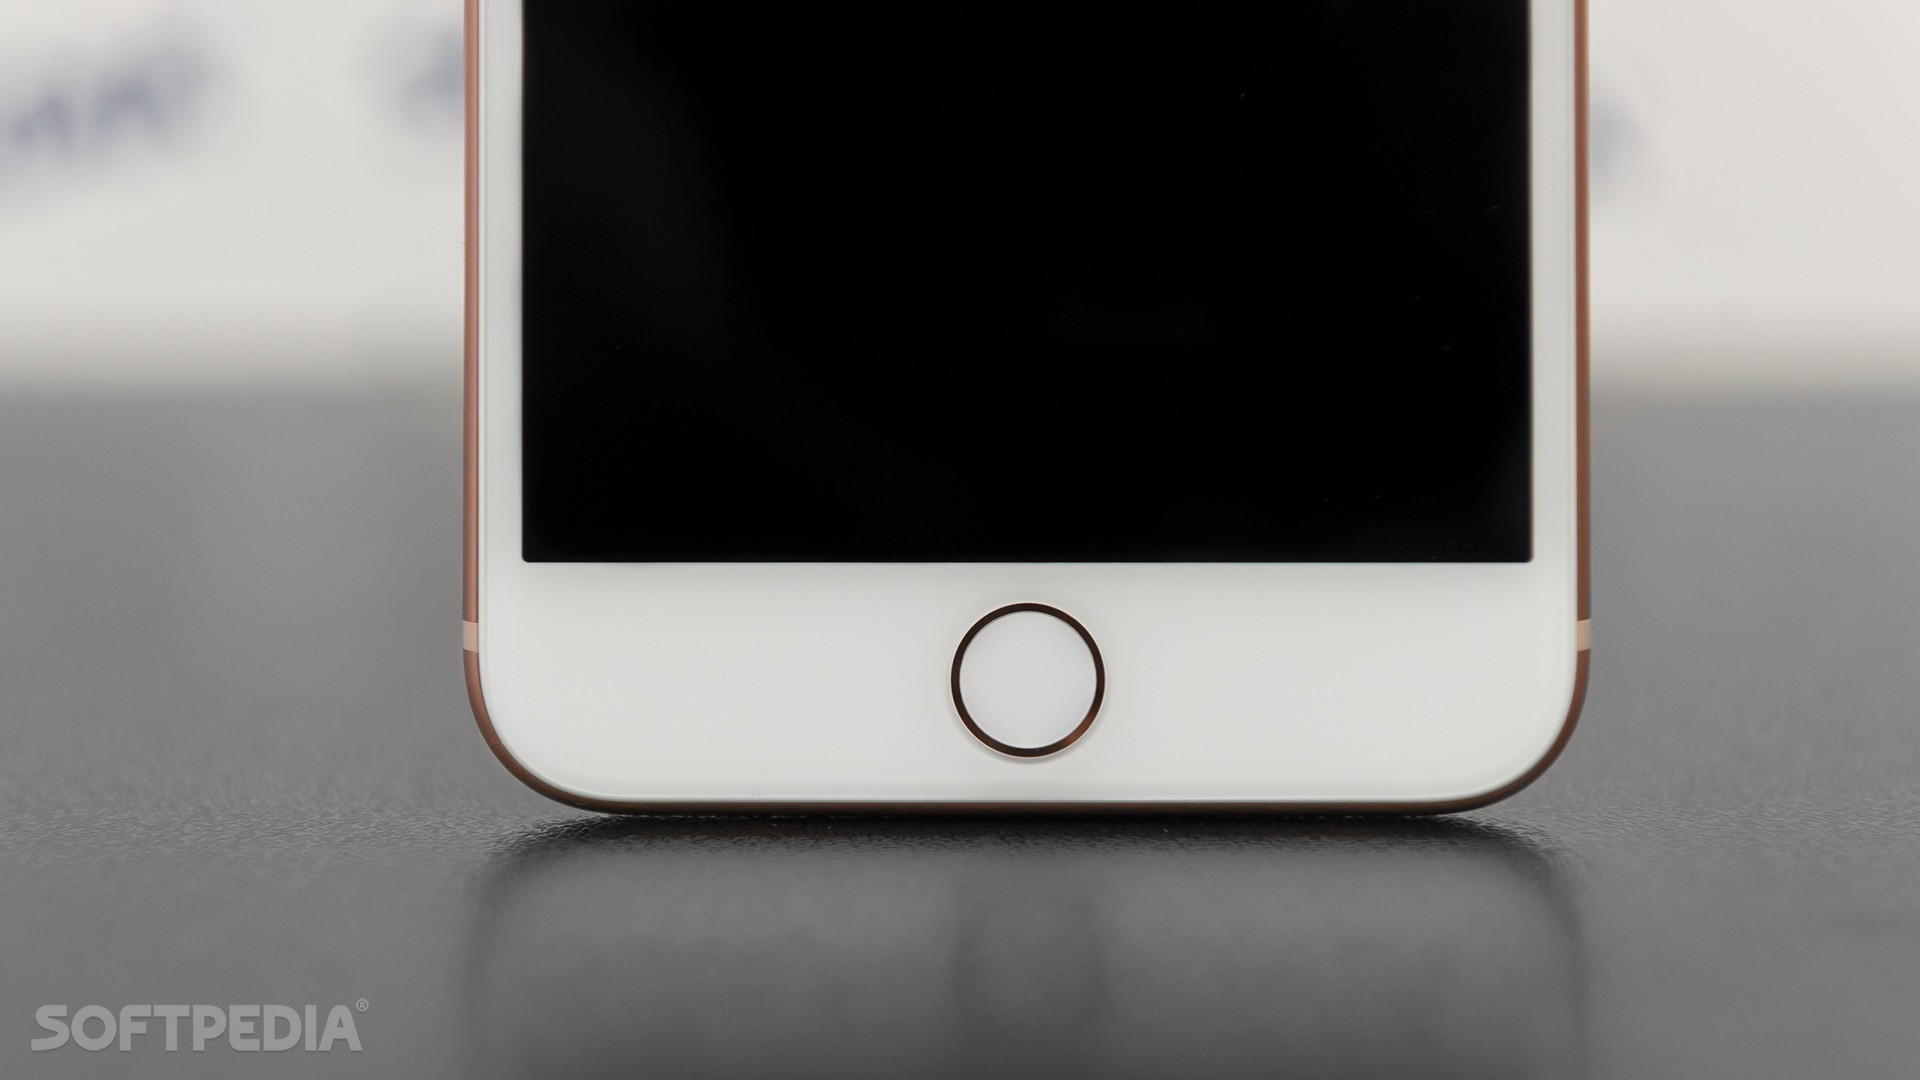 IPhone 12S Could Bring Back a Feature Apple Abandoned in 2017